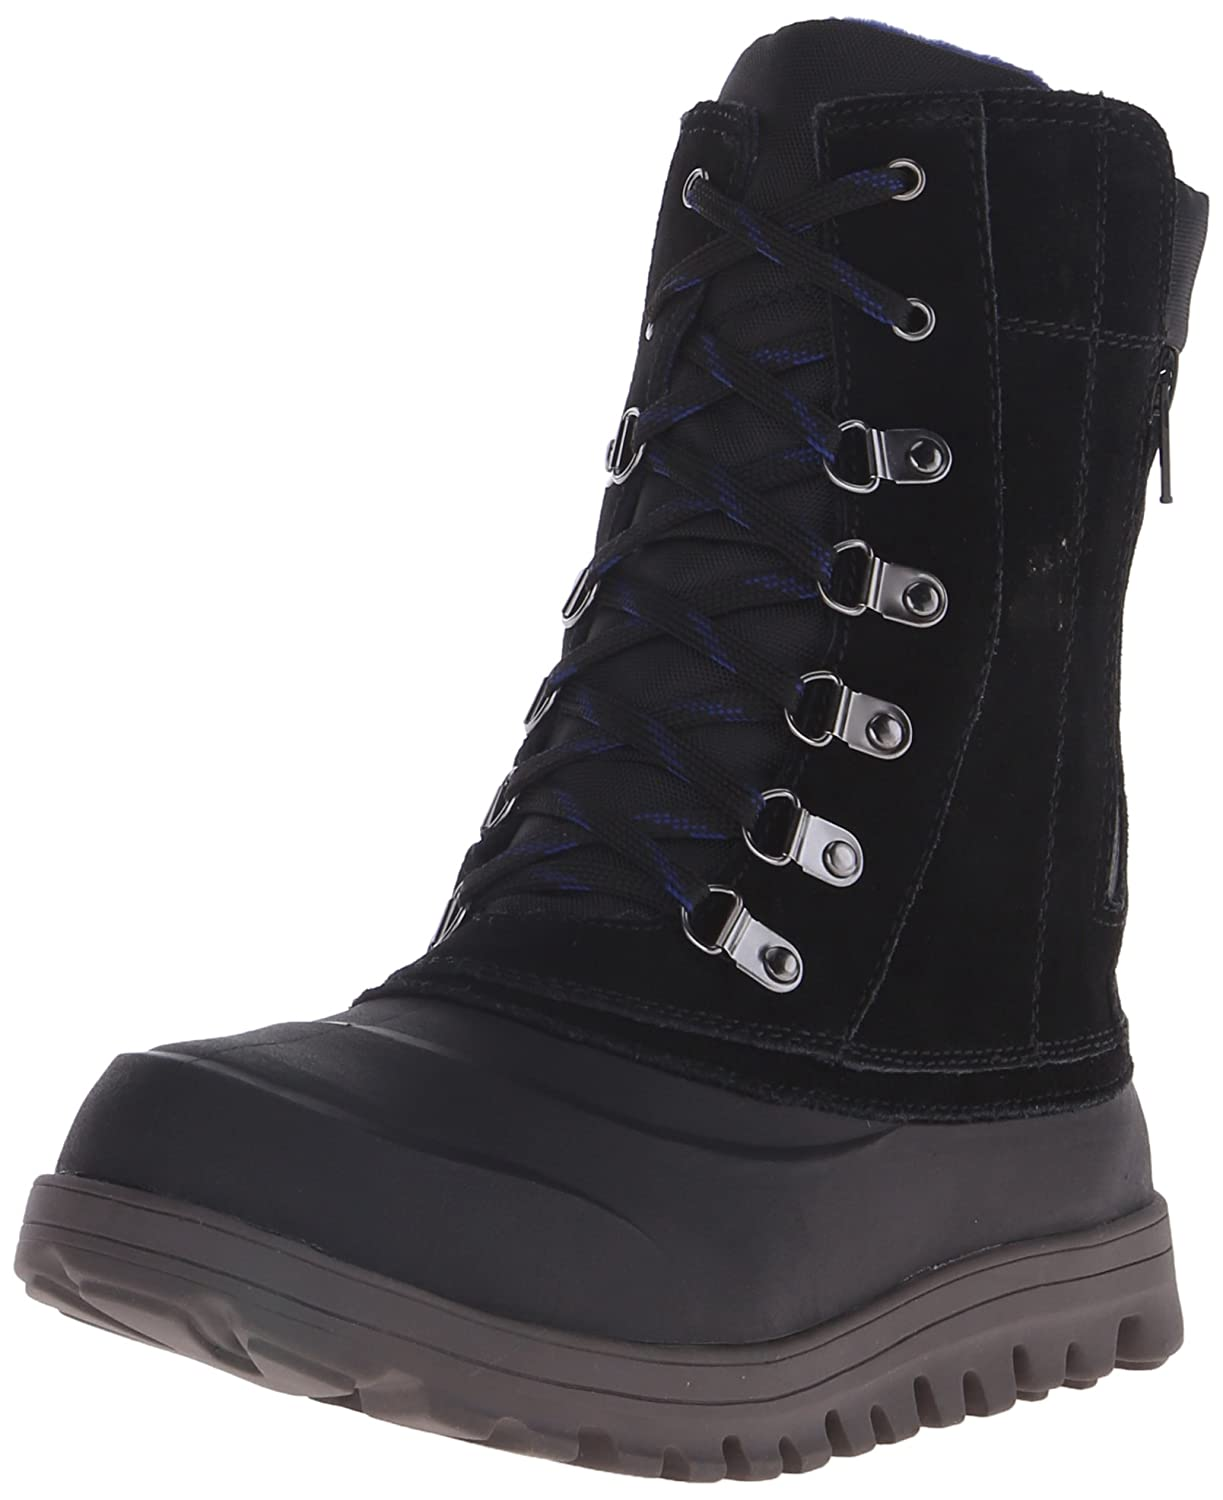 BareTraps Women's Yasmen Snow Boot B00UBH9LPC 6.5 B(M) US|Black